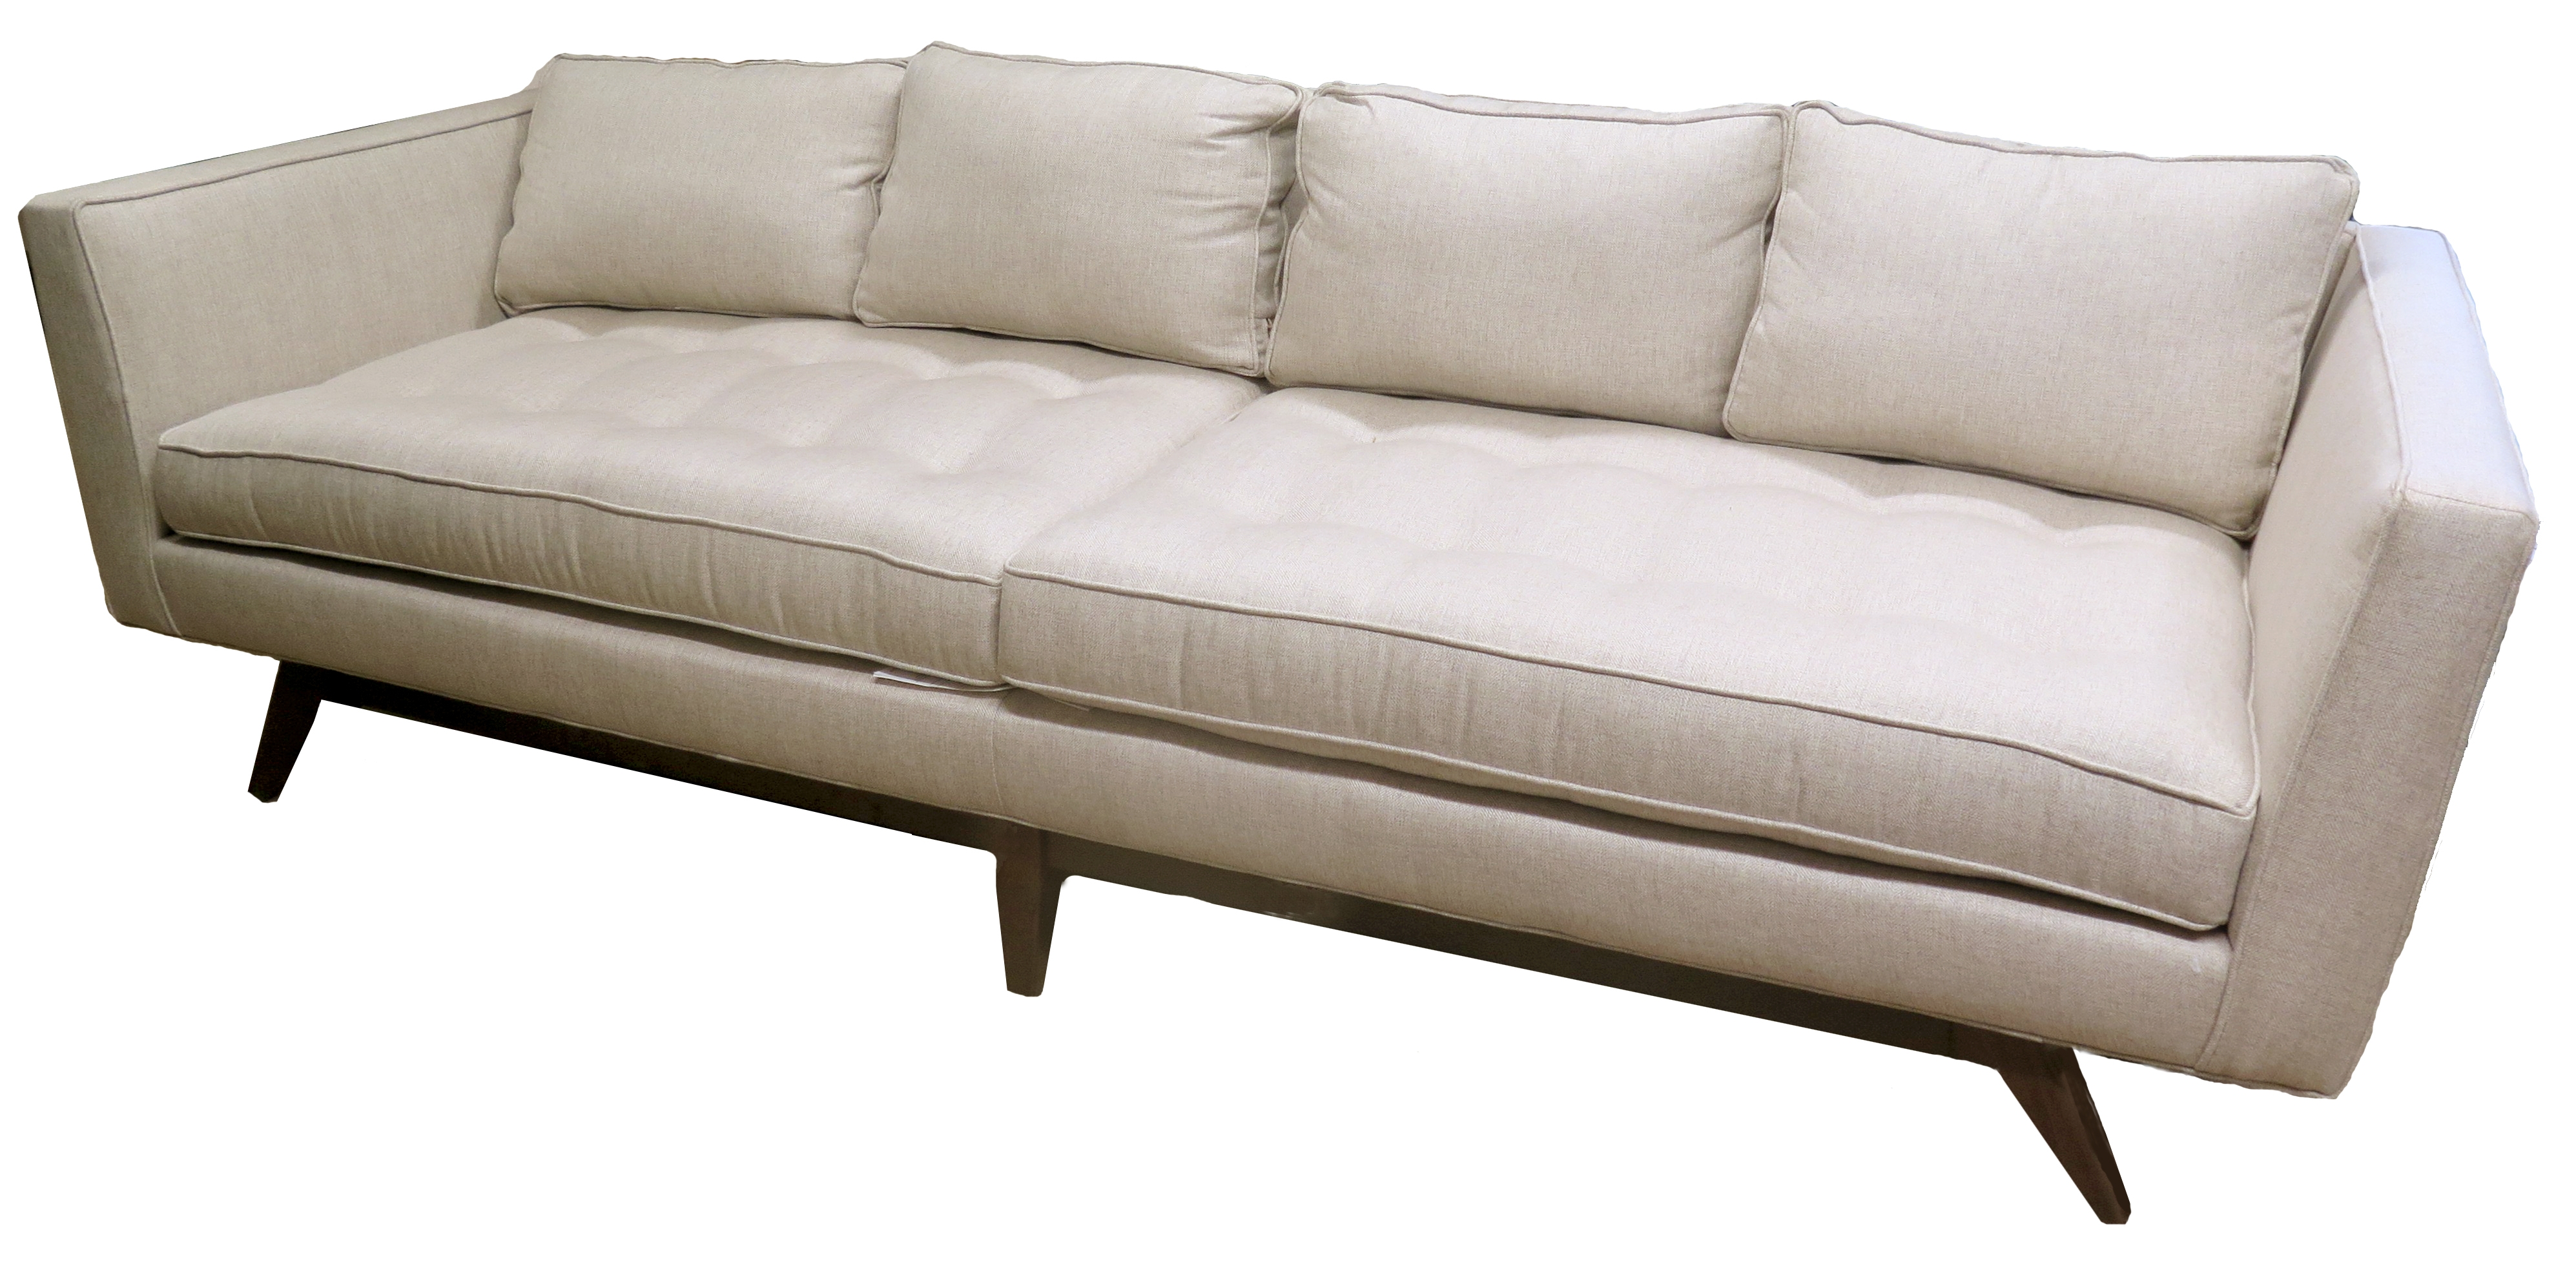 Tufted Upholstered Oatmeal Sofa With Tapered Wood Legs (BK)